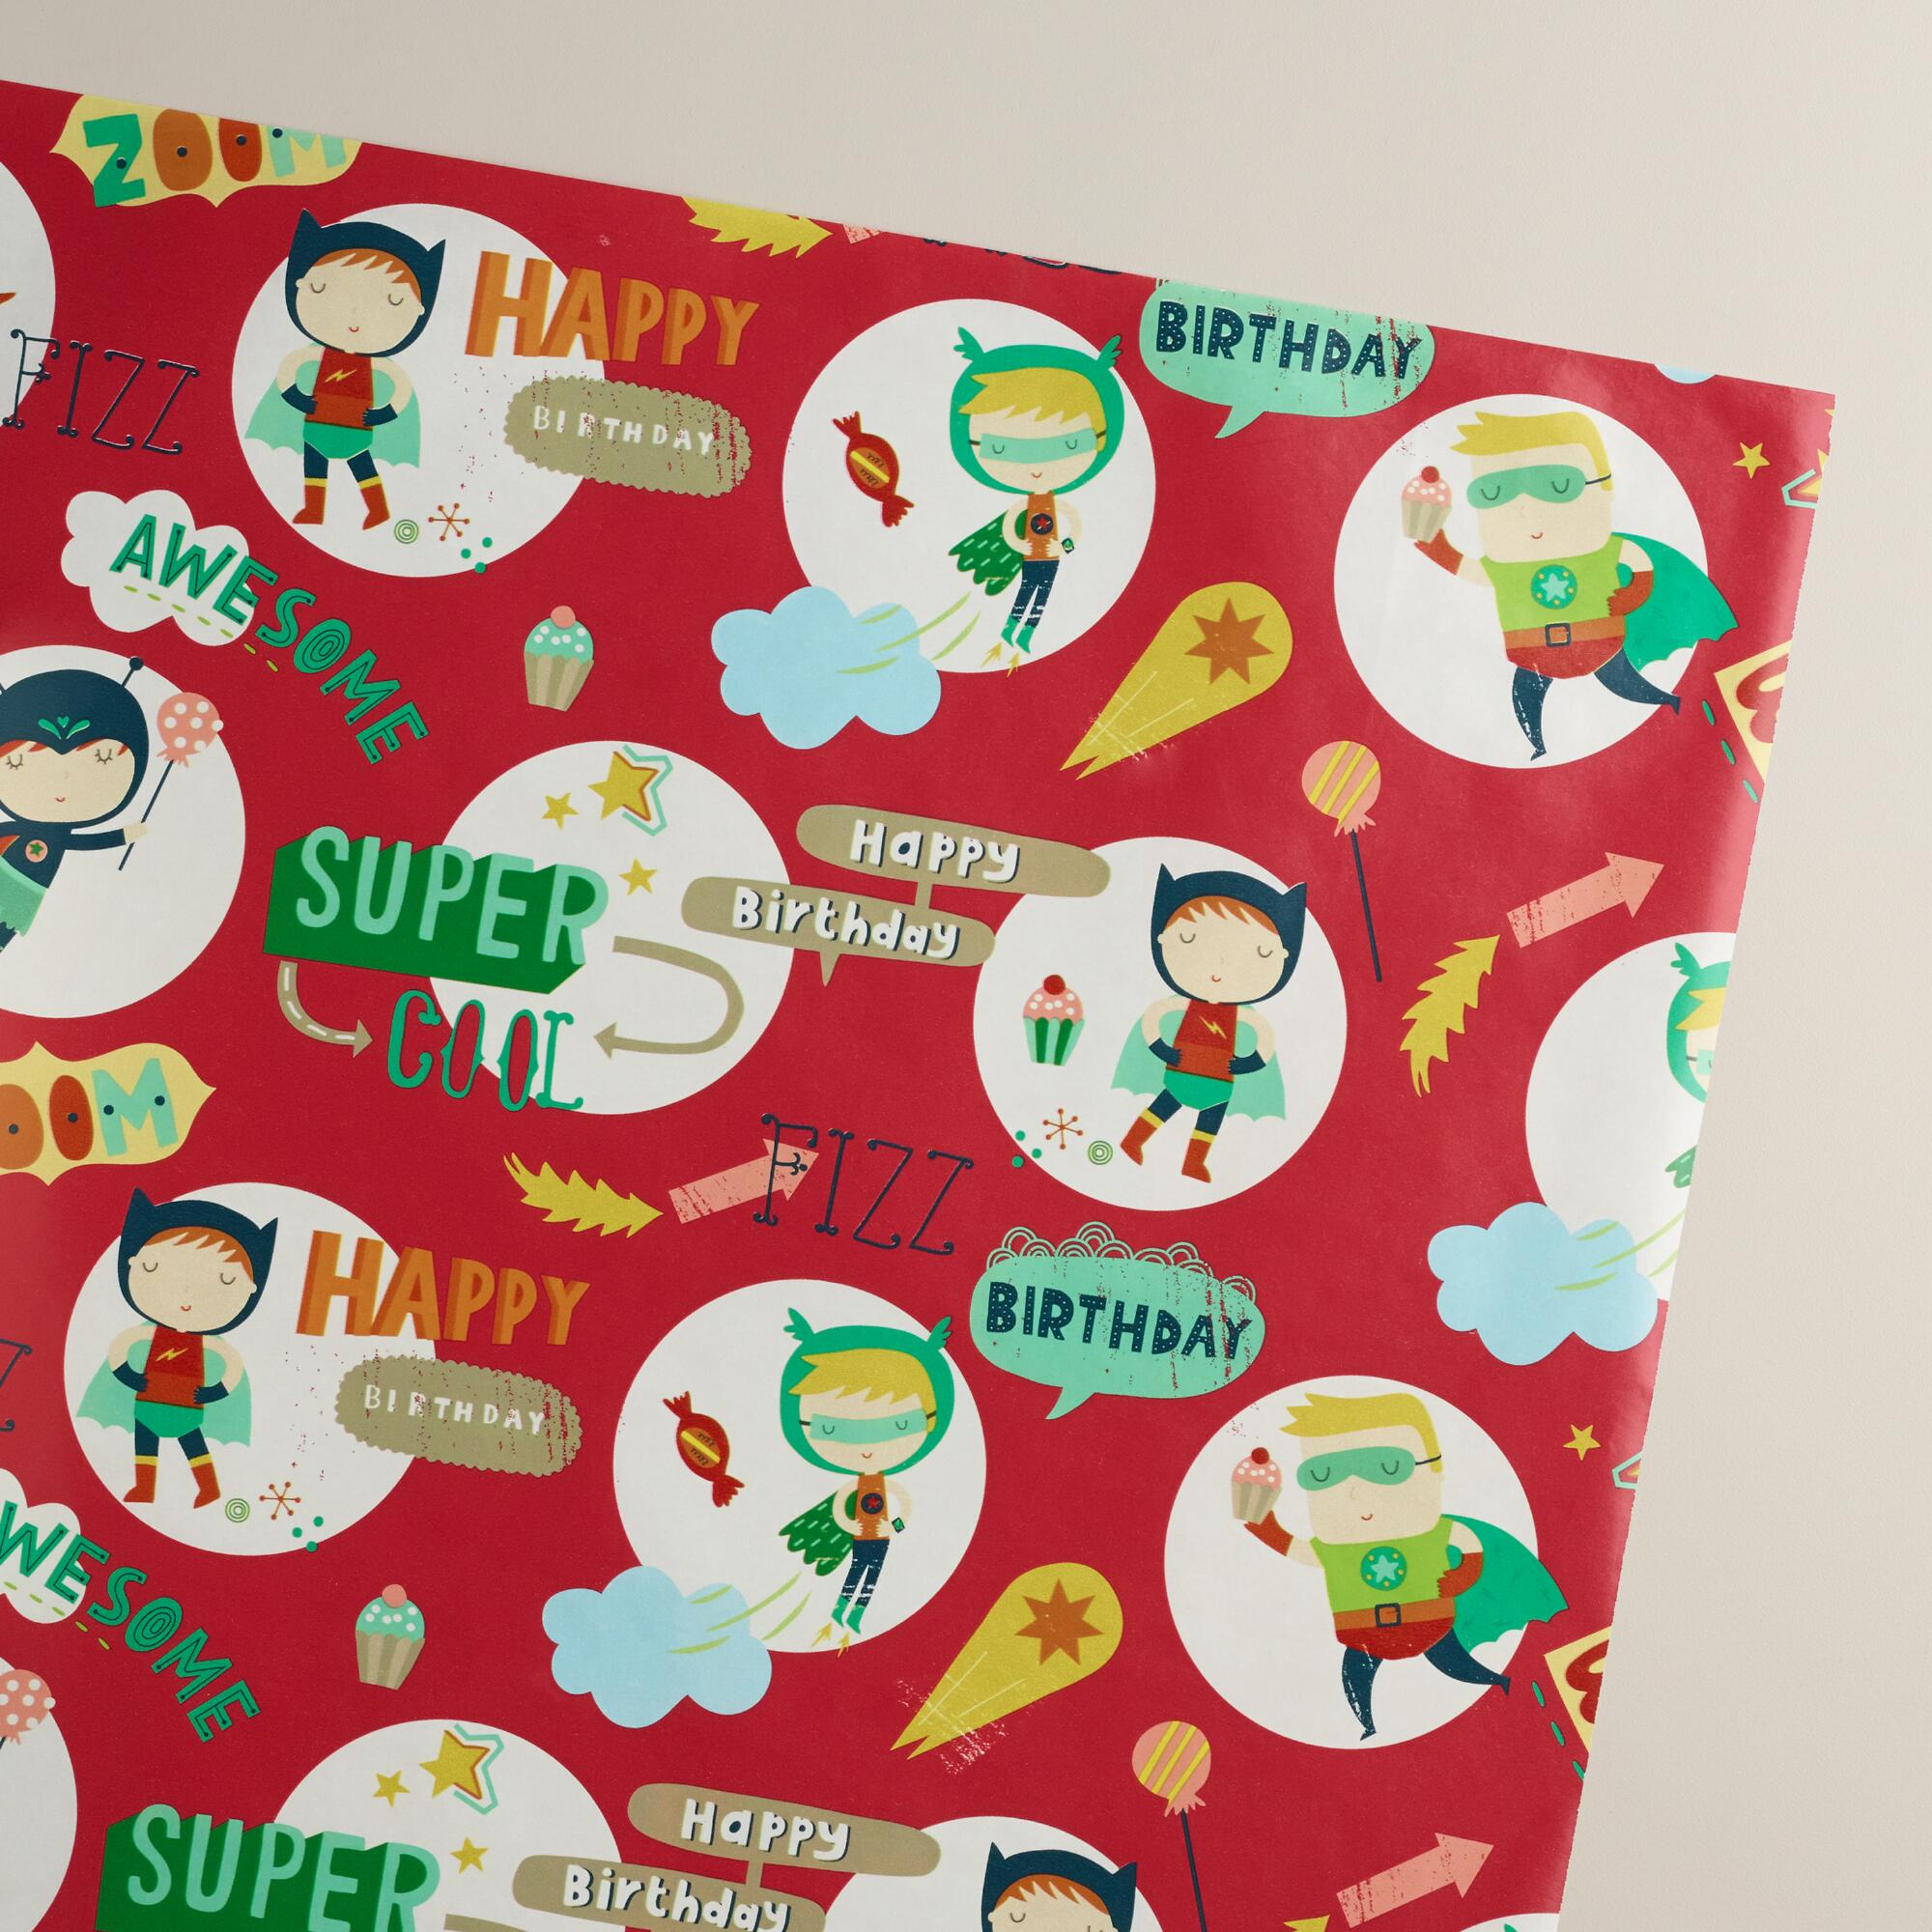 Red Birthday Heroes Wrapping Paper Roll | World Market